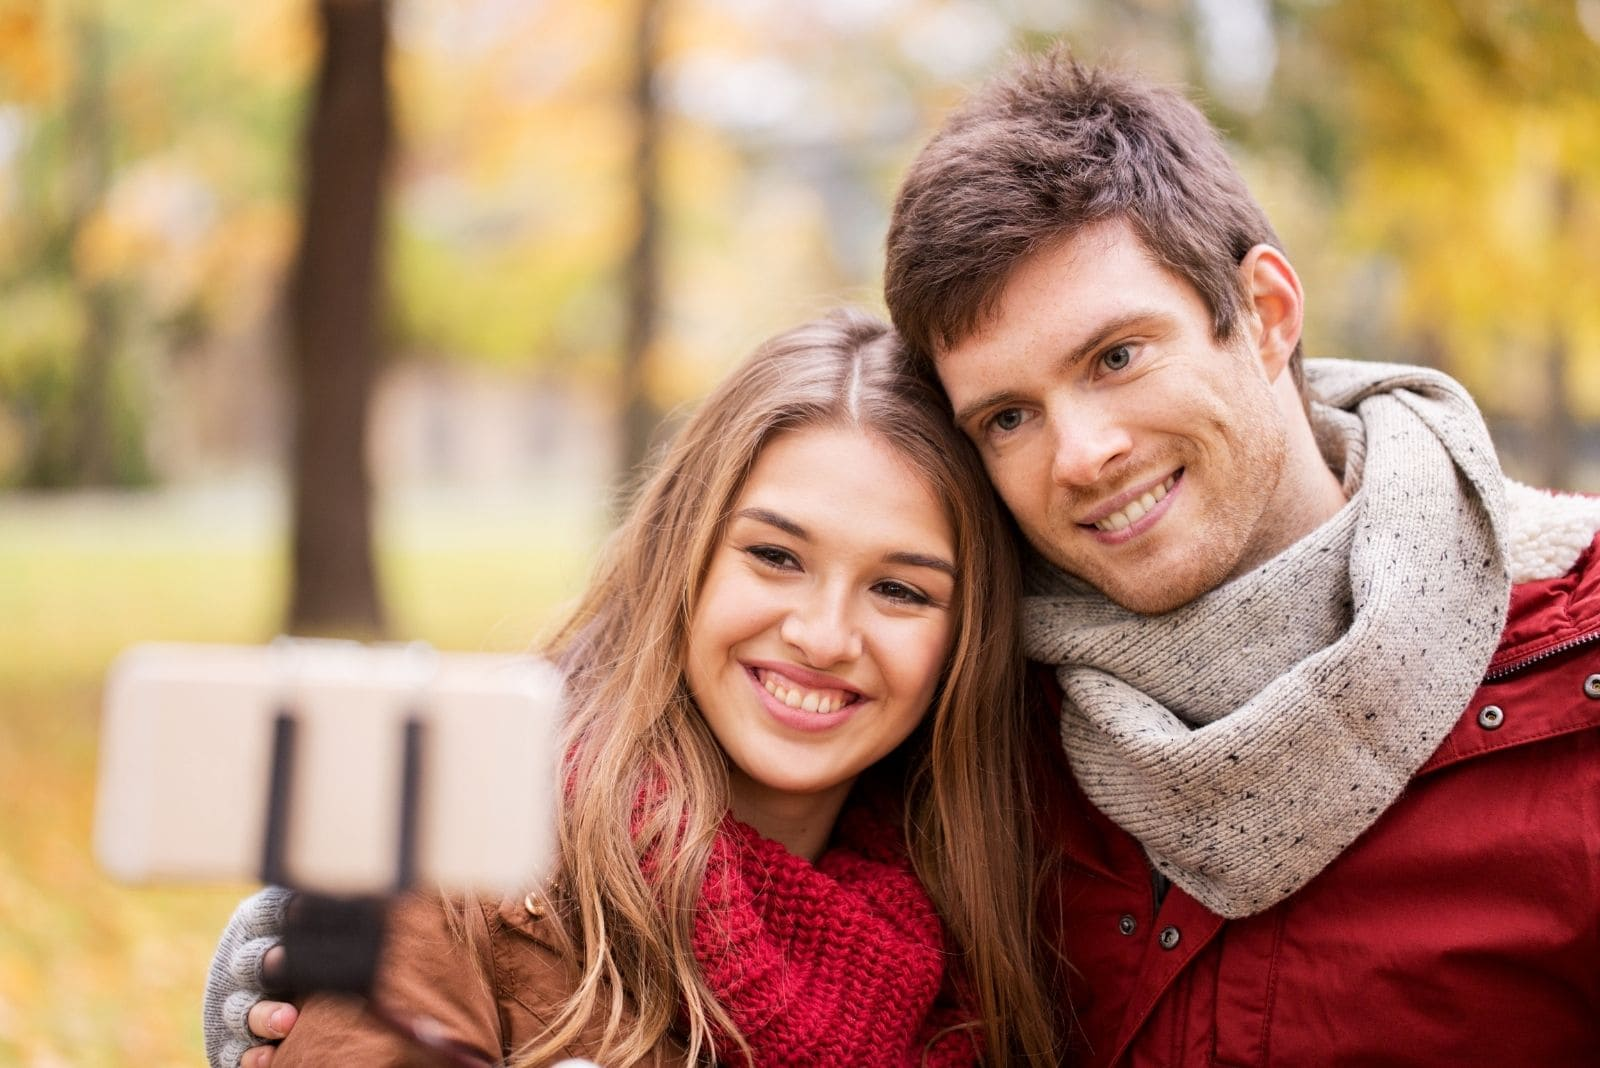 happy smiling couple taking a picture with smartphone and selfie stick during autumn season